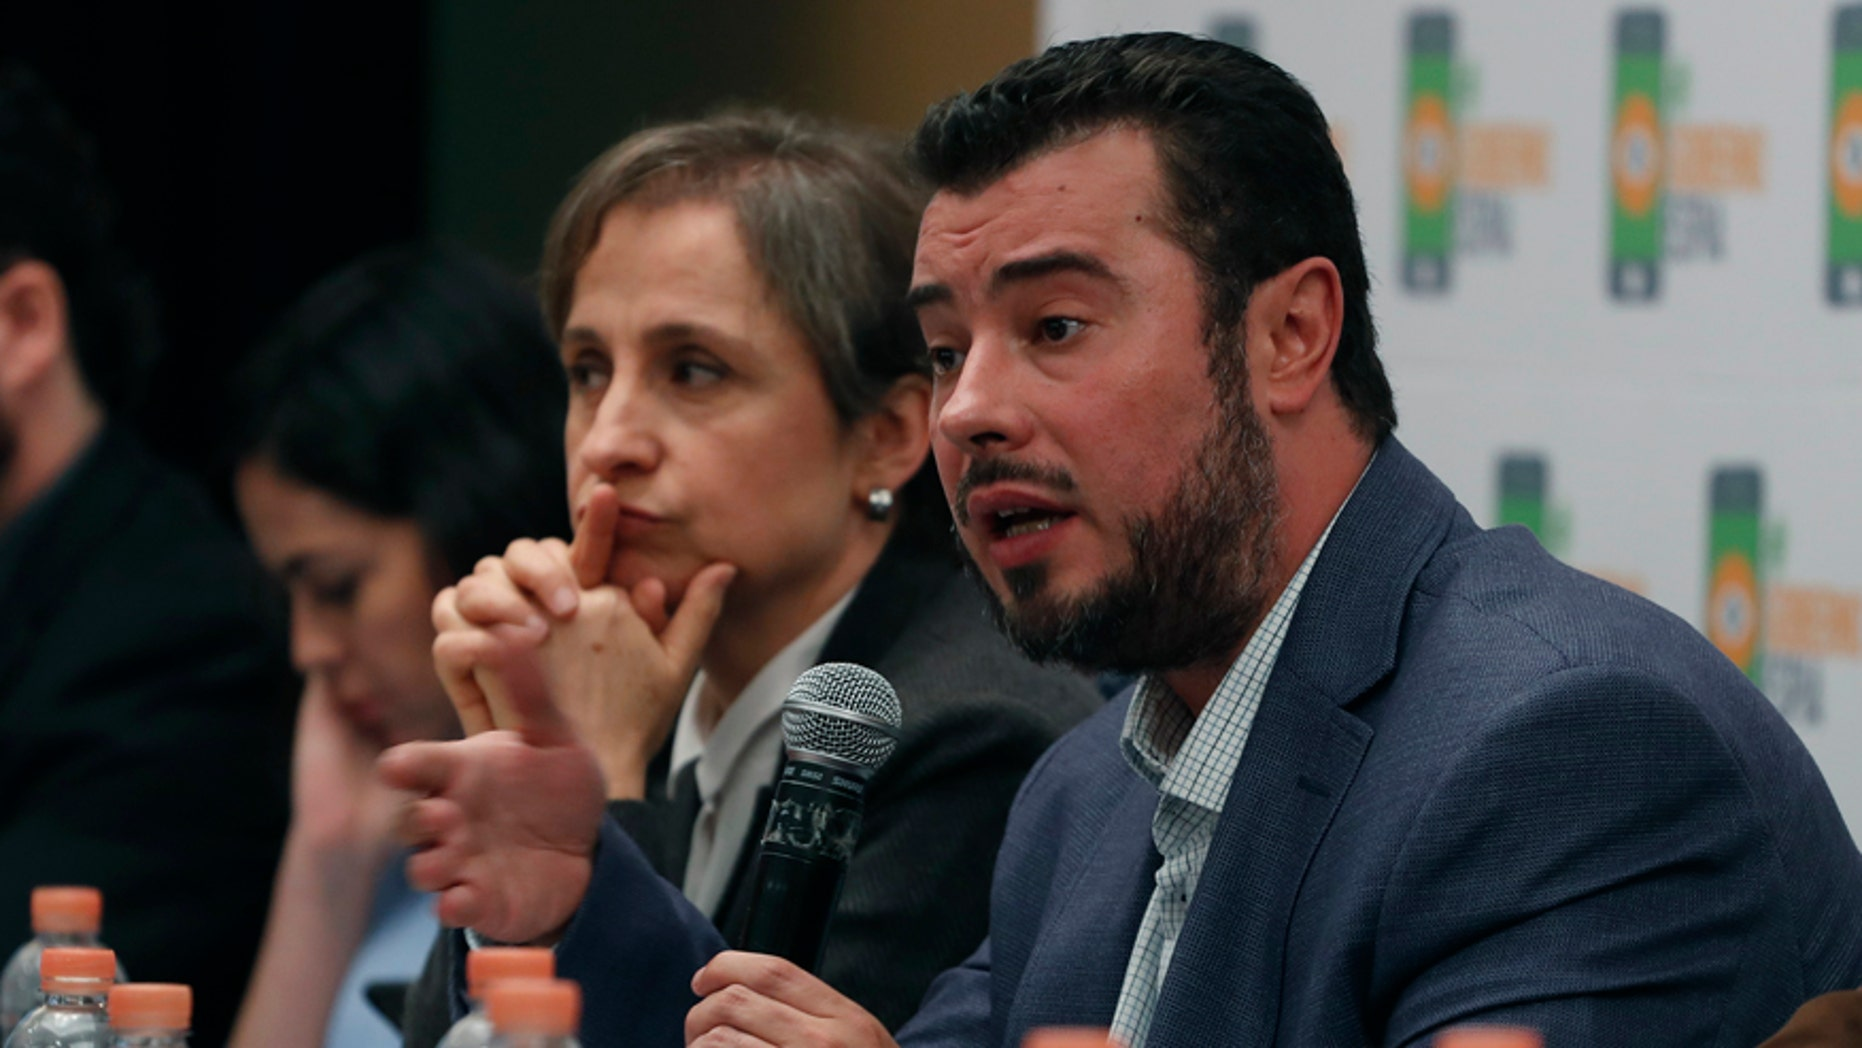 Mario Patron Sanchez, director of the Miguel Agustín Pro Juárez Center for Human Rights, talks during a news conference, seated next to Mexican journalist Carmen Aristegui, in Mexico City on Monday.